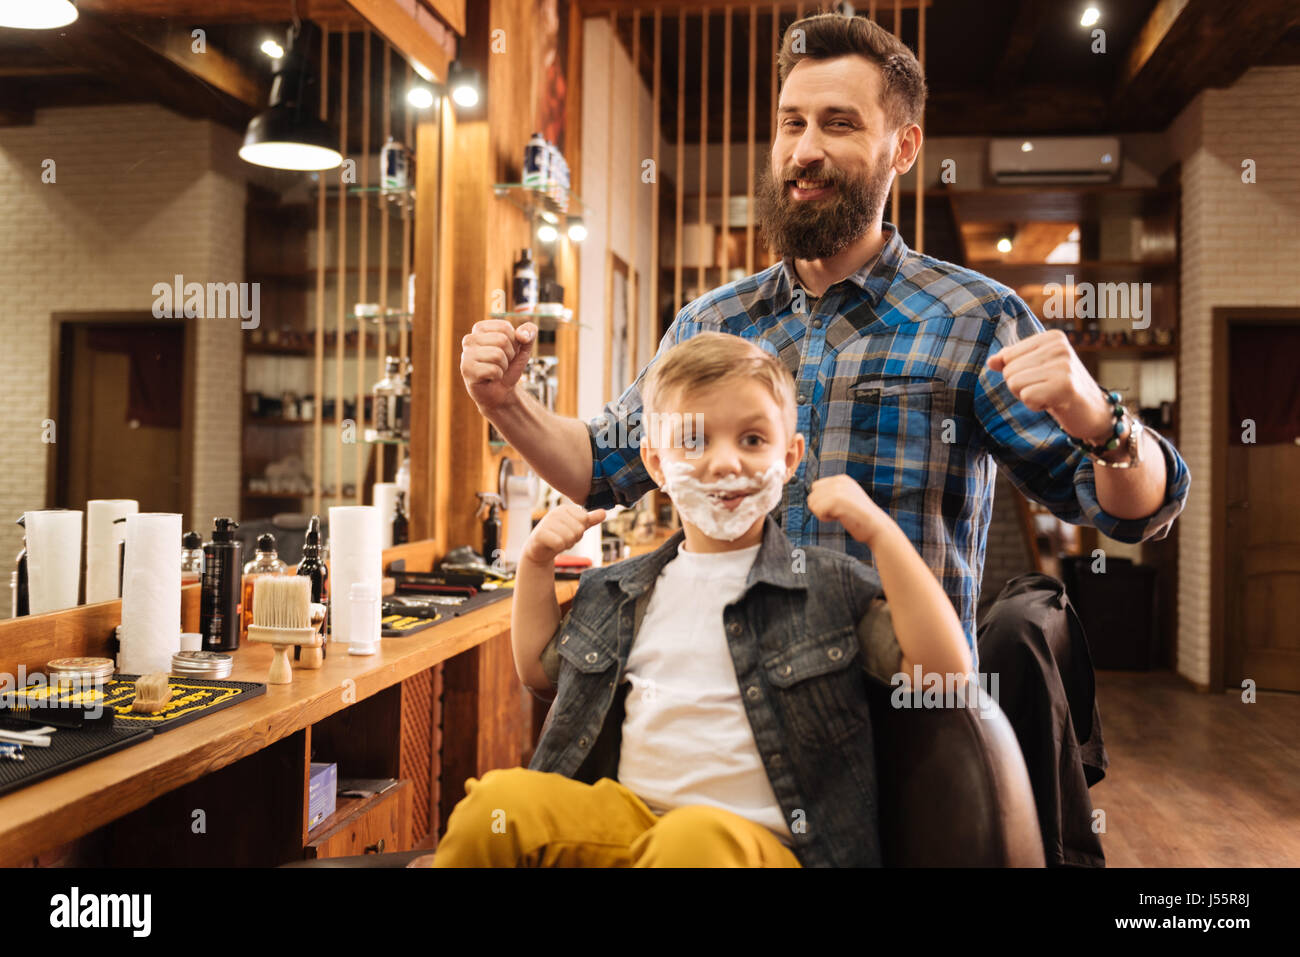 Happy nice boy showing his strength - Stock Image